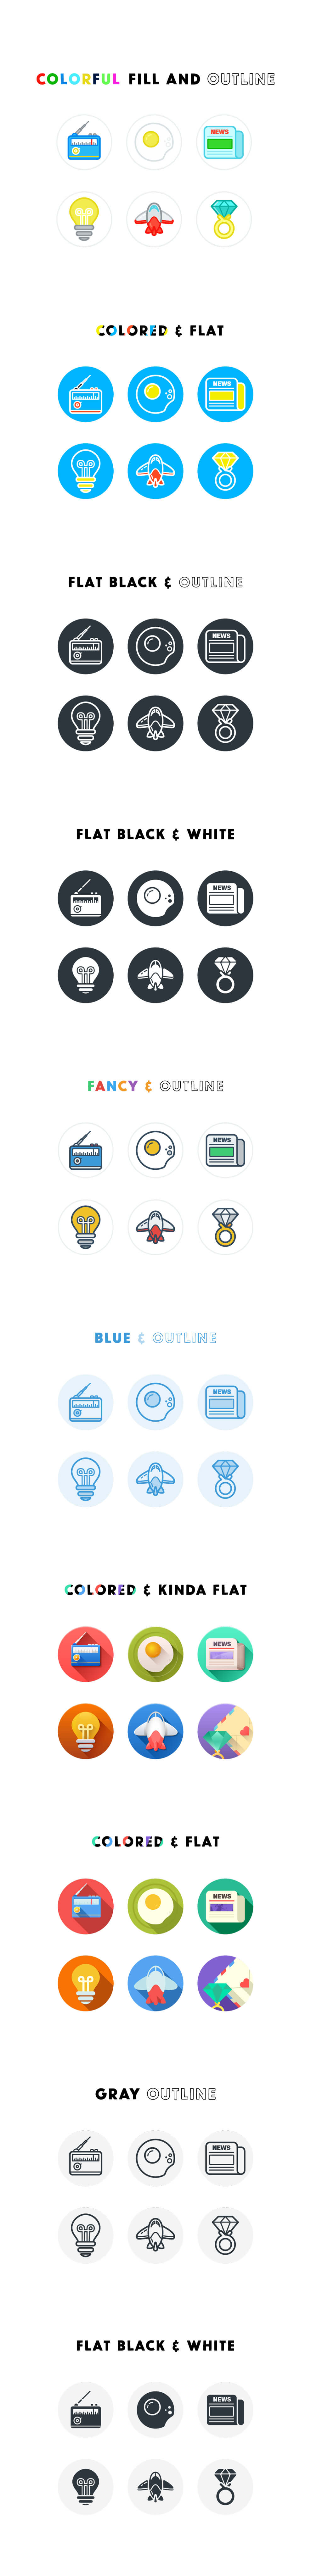 colorful_icon_set